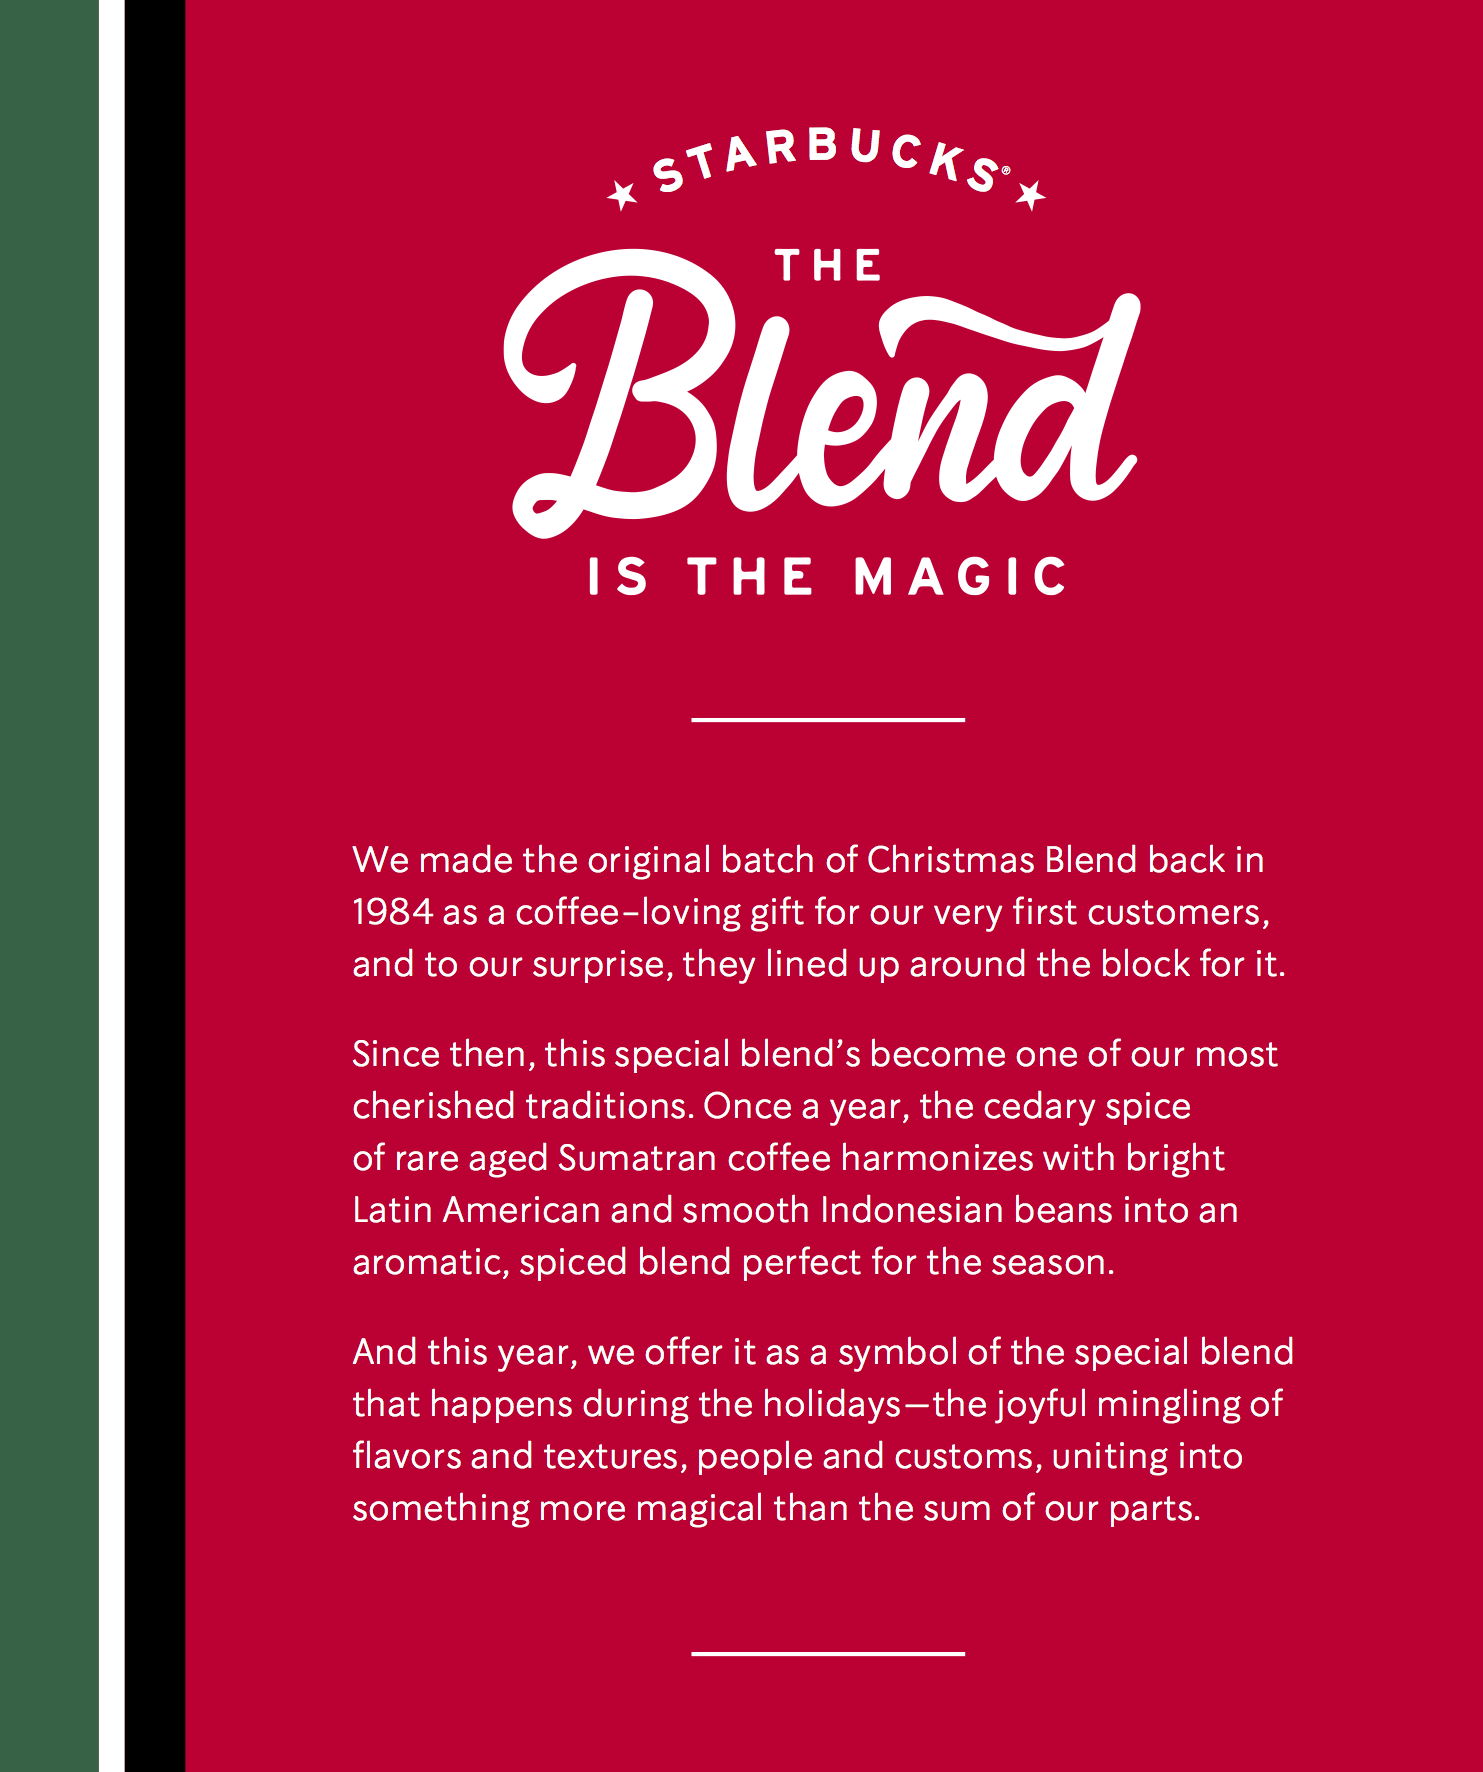 """The line, """"The Blend is the Magic"""" was meant to celebrate all the different ways in which we celebrate the holidays while making a nod to the Starbucks Christmas Blend coffee, which is delicious."""